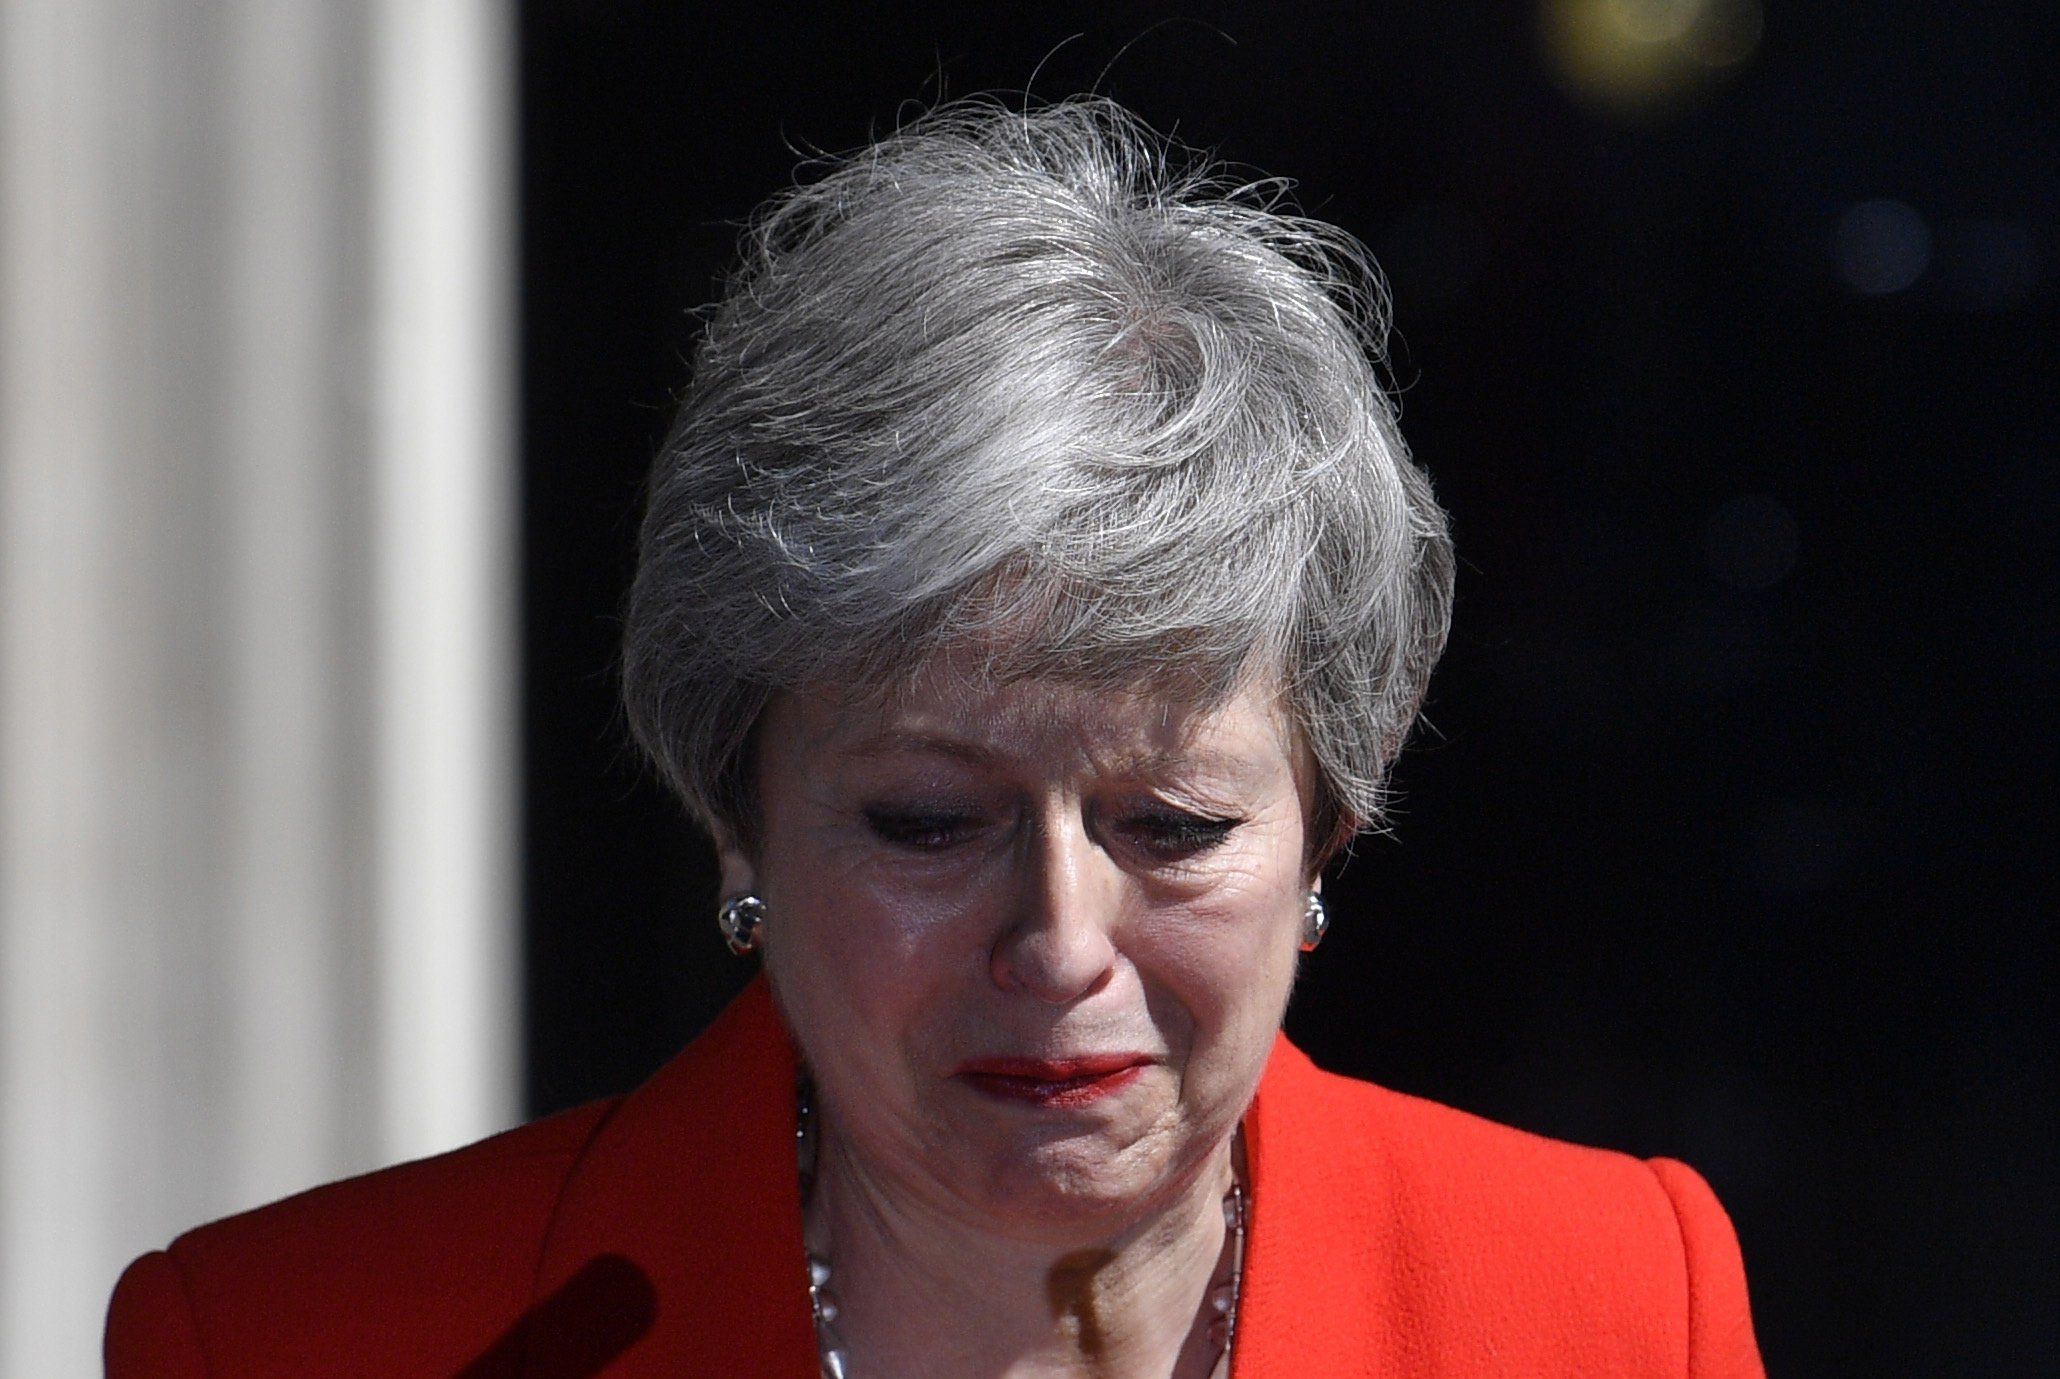 Theresa May's resignation tears were 'ones of anger not self-pity'